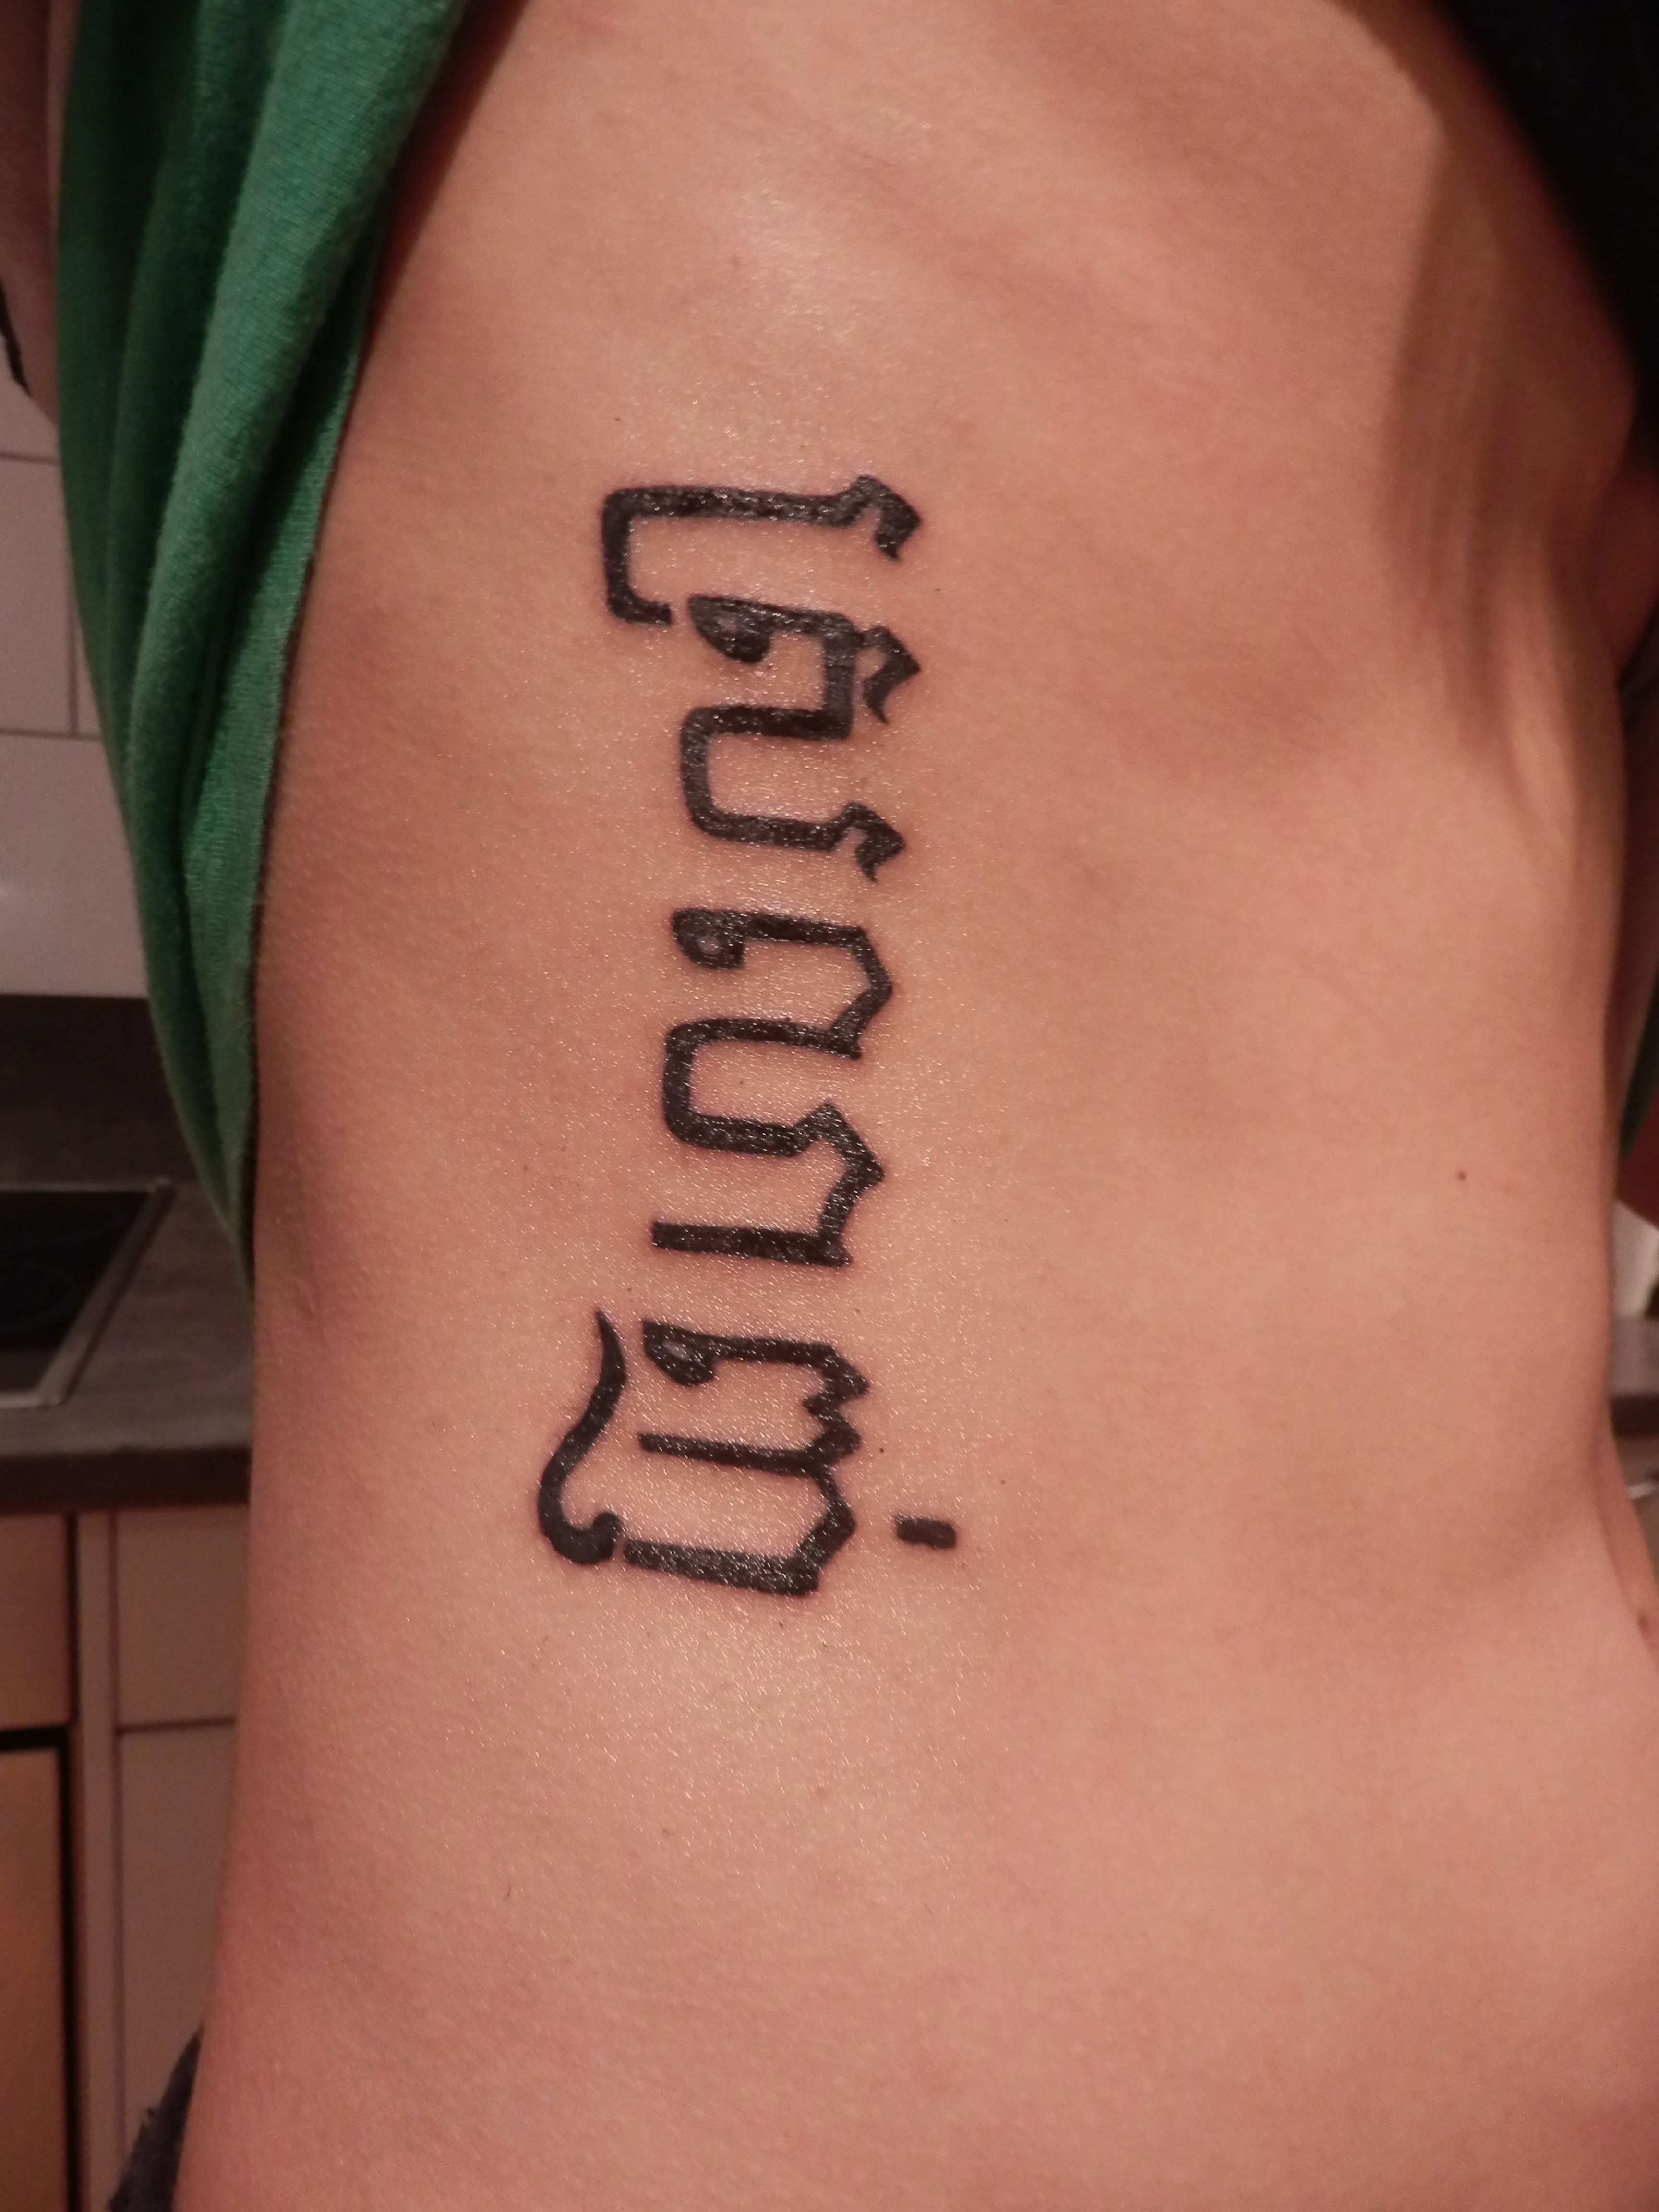 My Little Brothers Tattoo Love In Khmer Script Body Ink